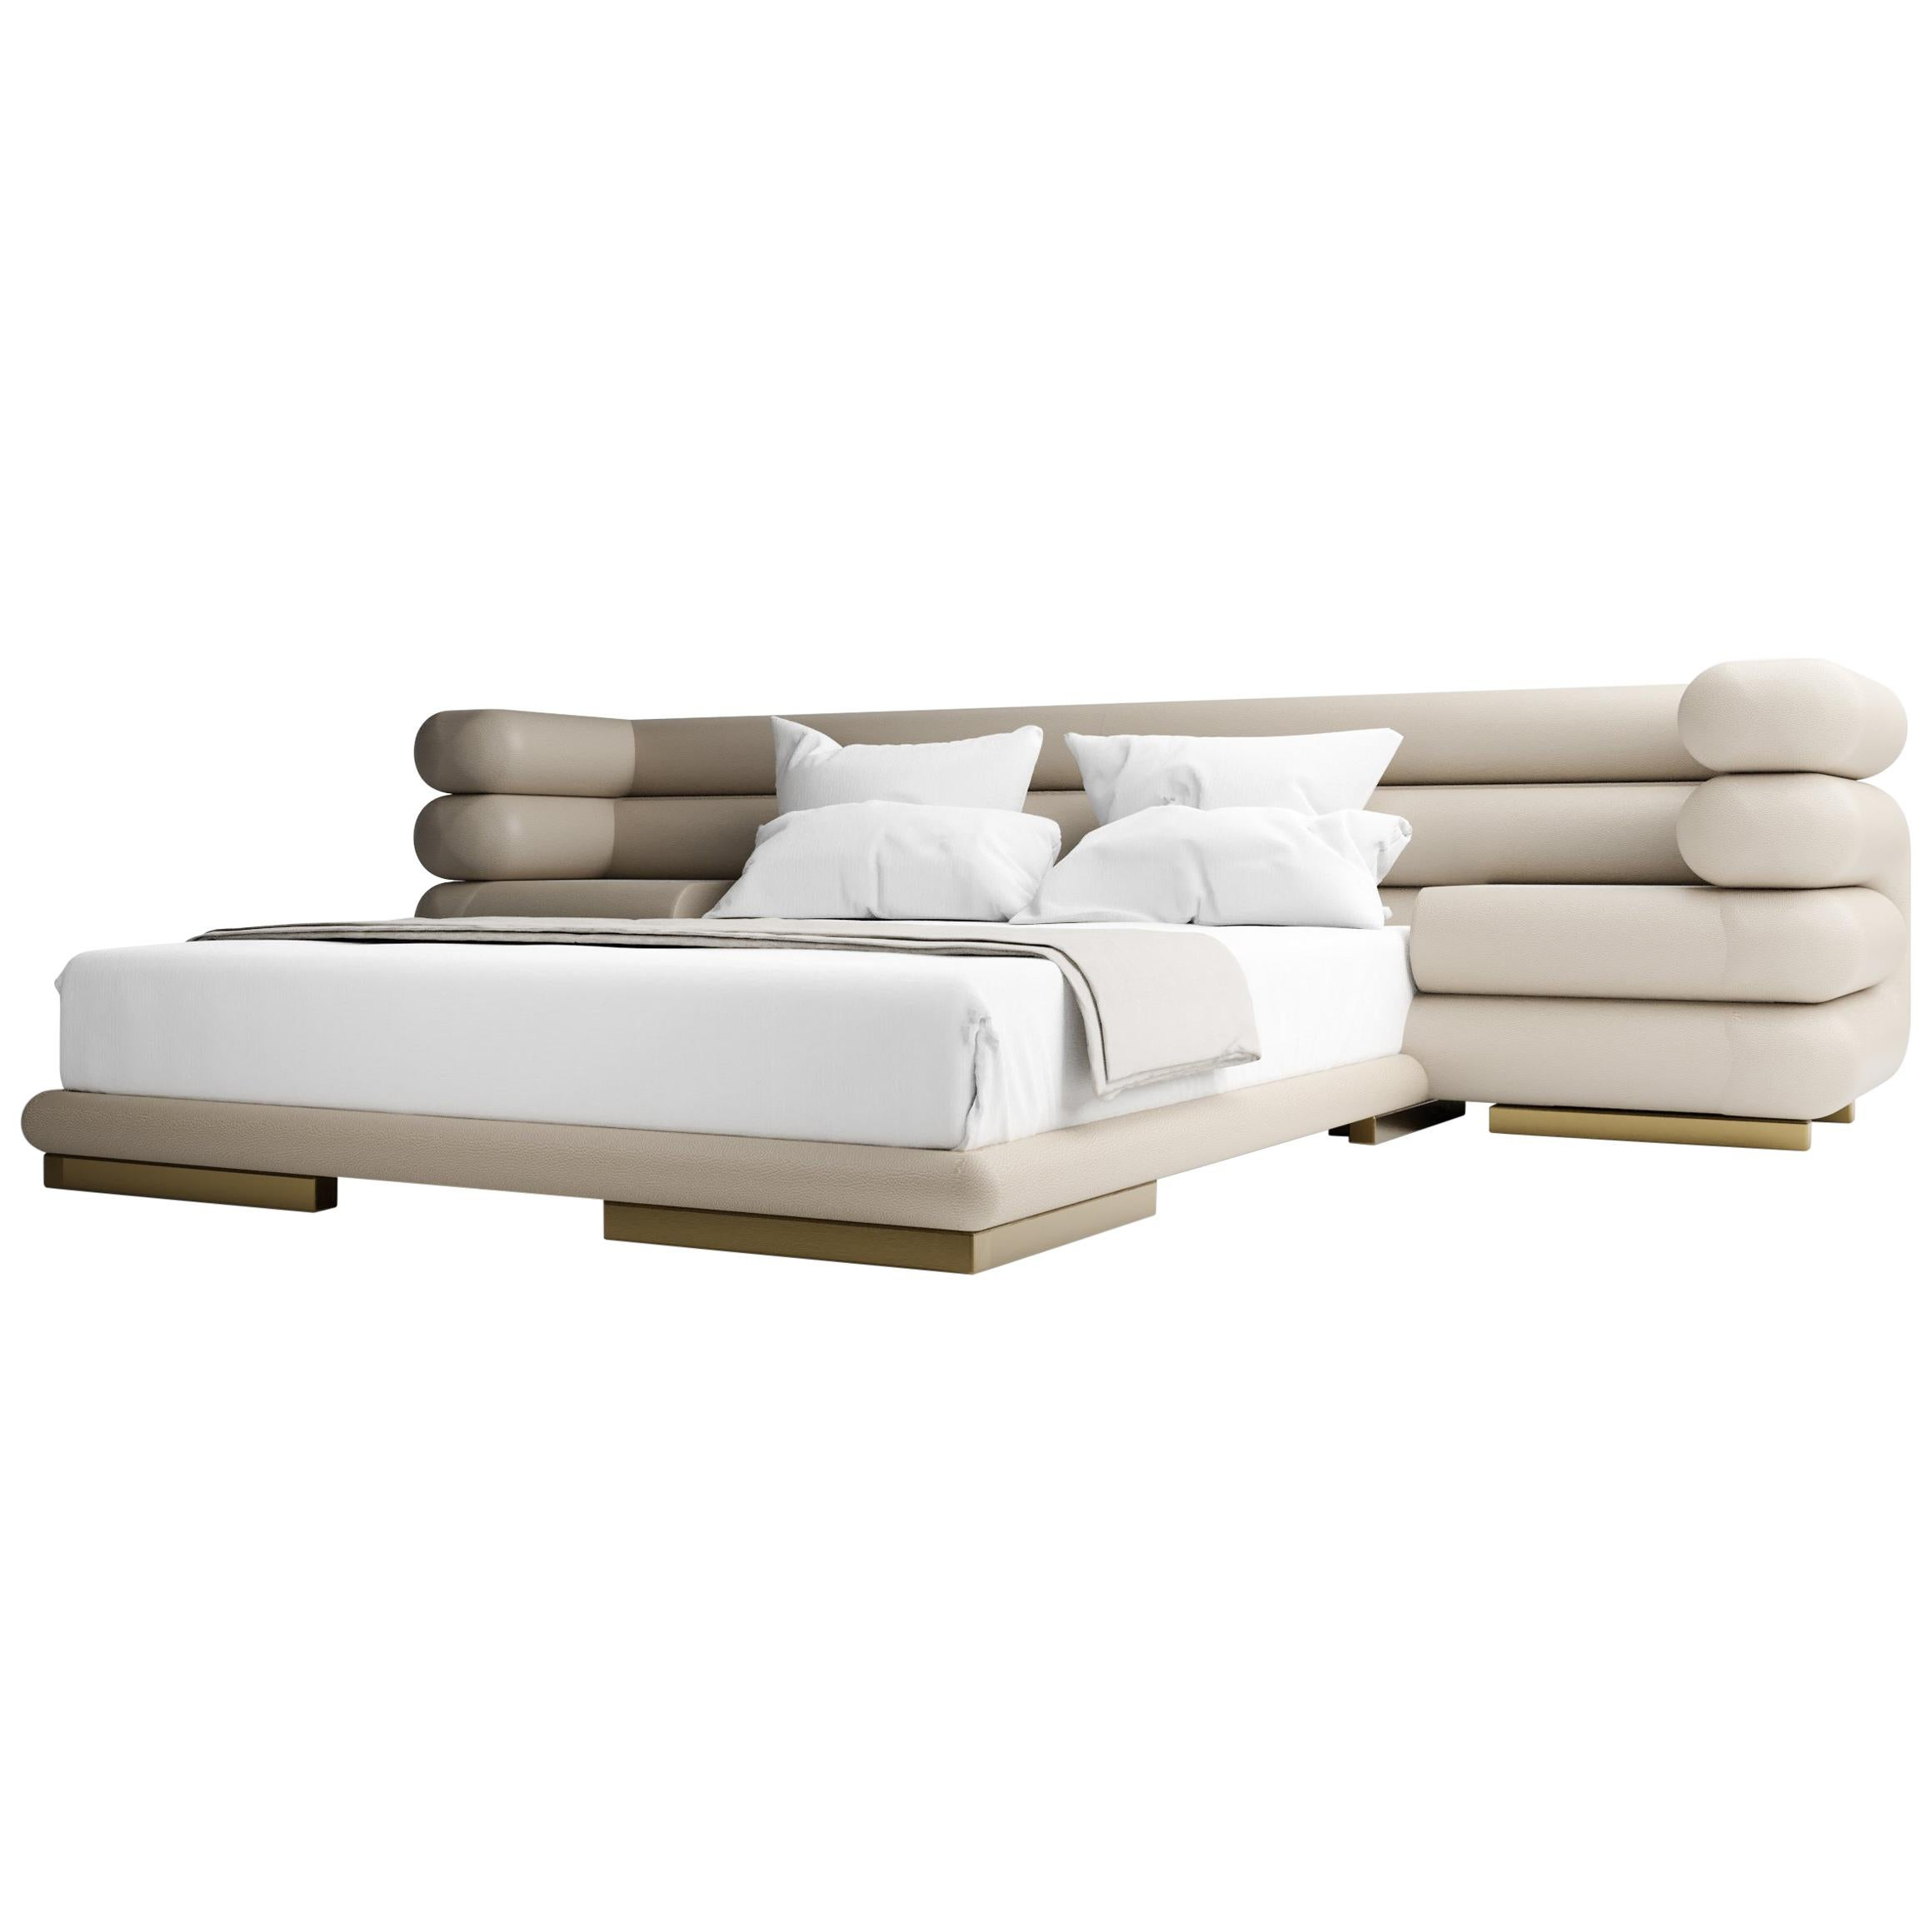 TOPANGA BED - Modern Design in Lealpell Leather and with Marble Table Insets